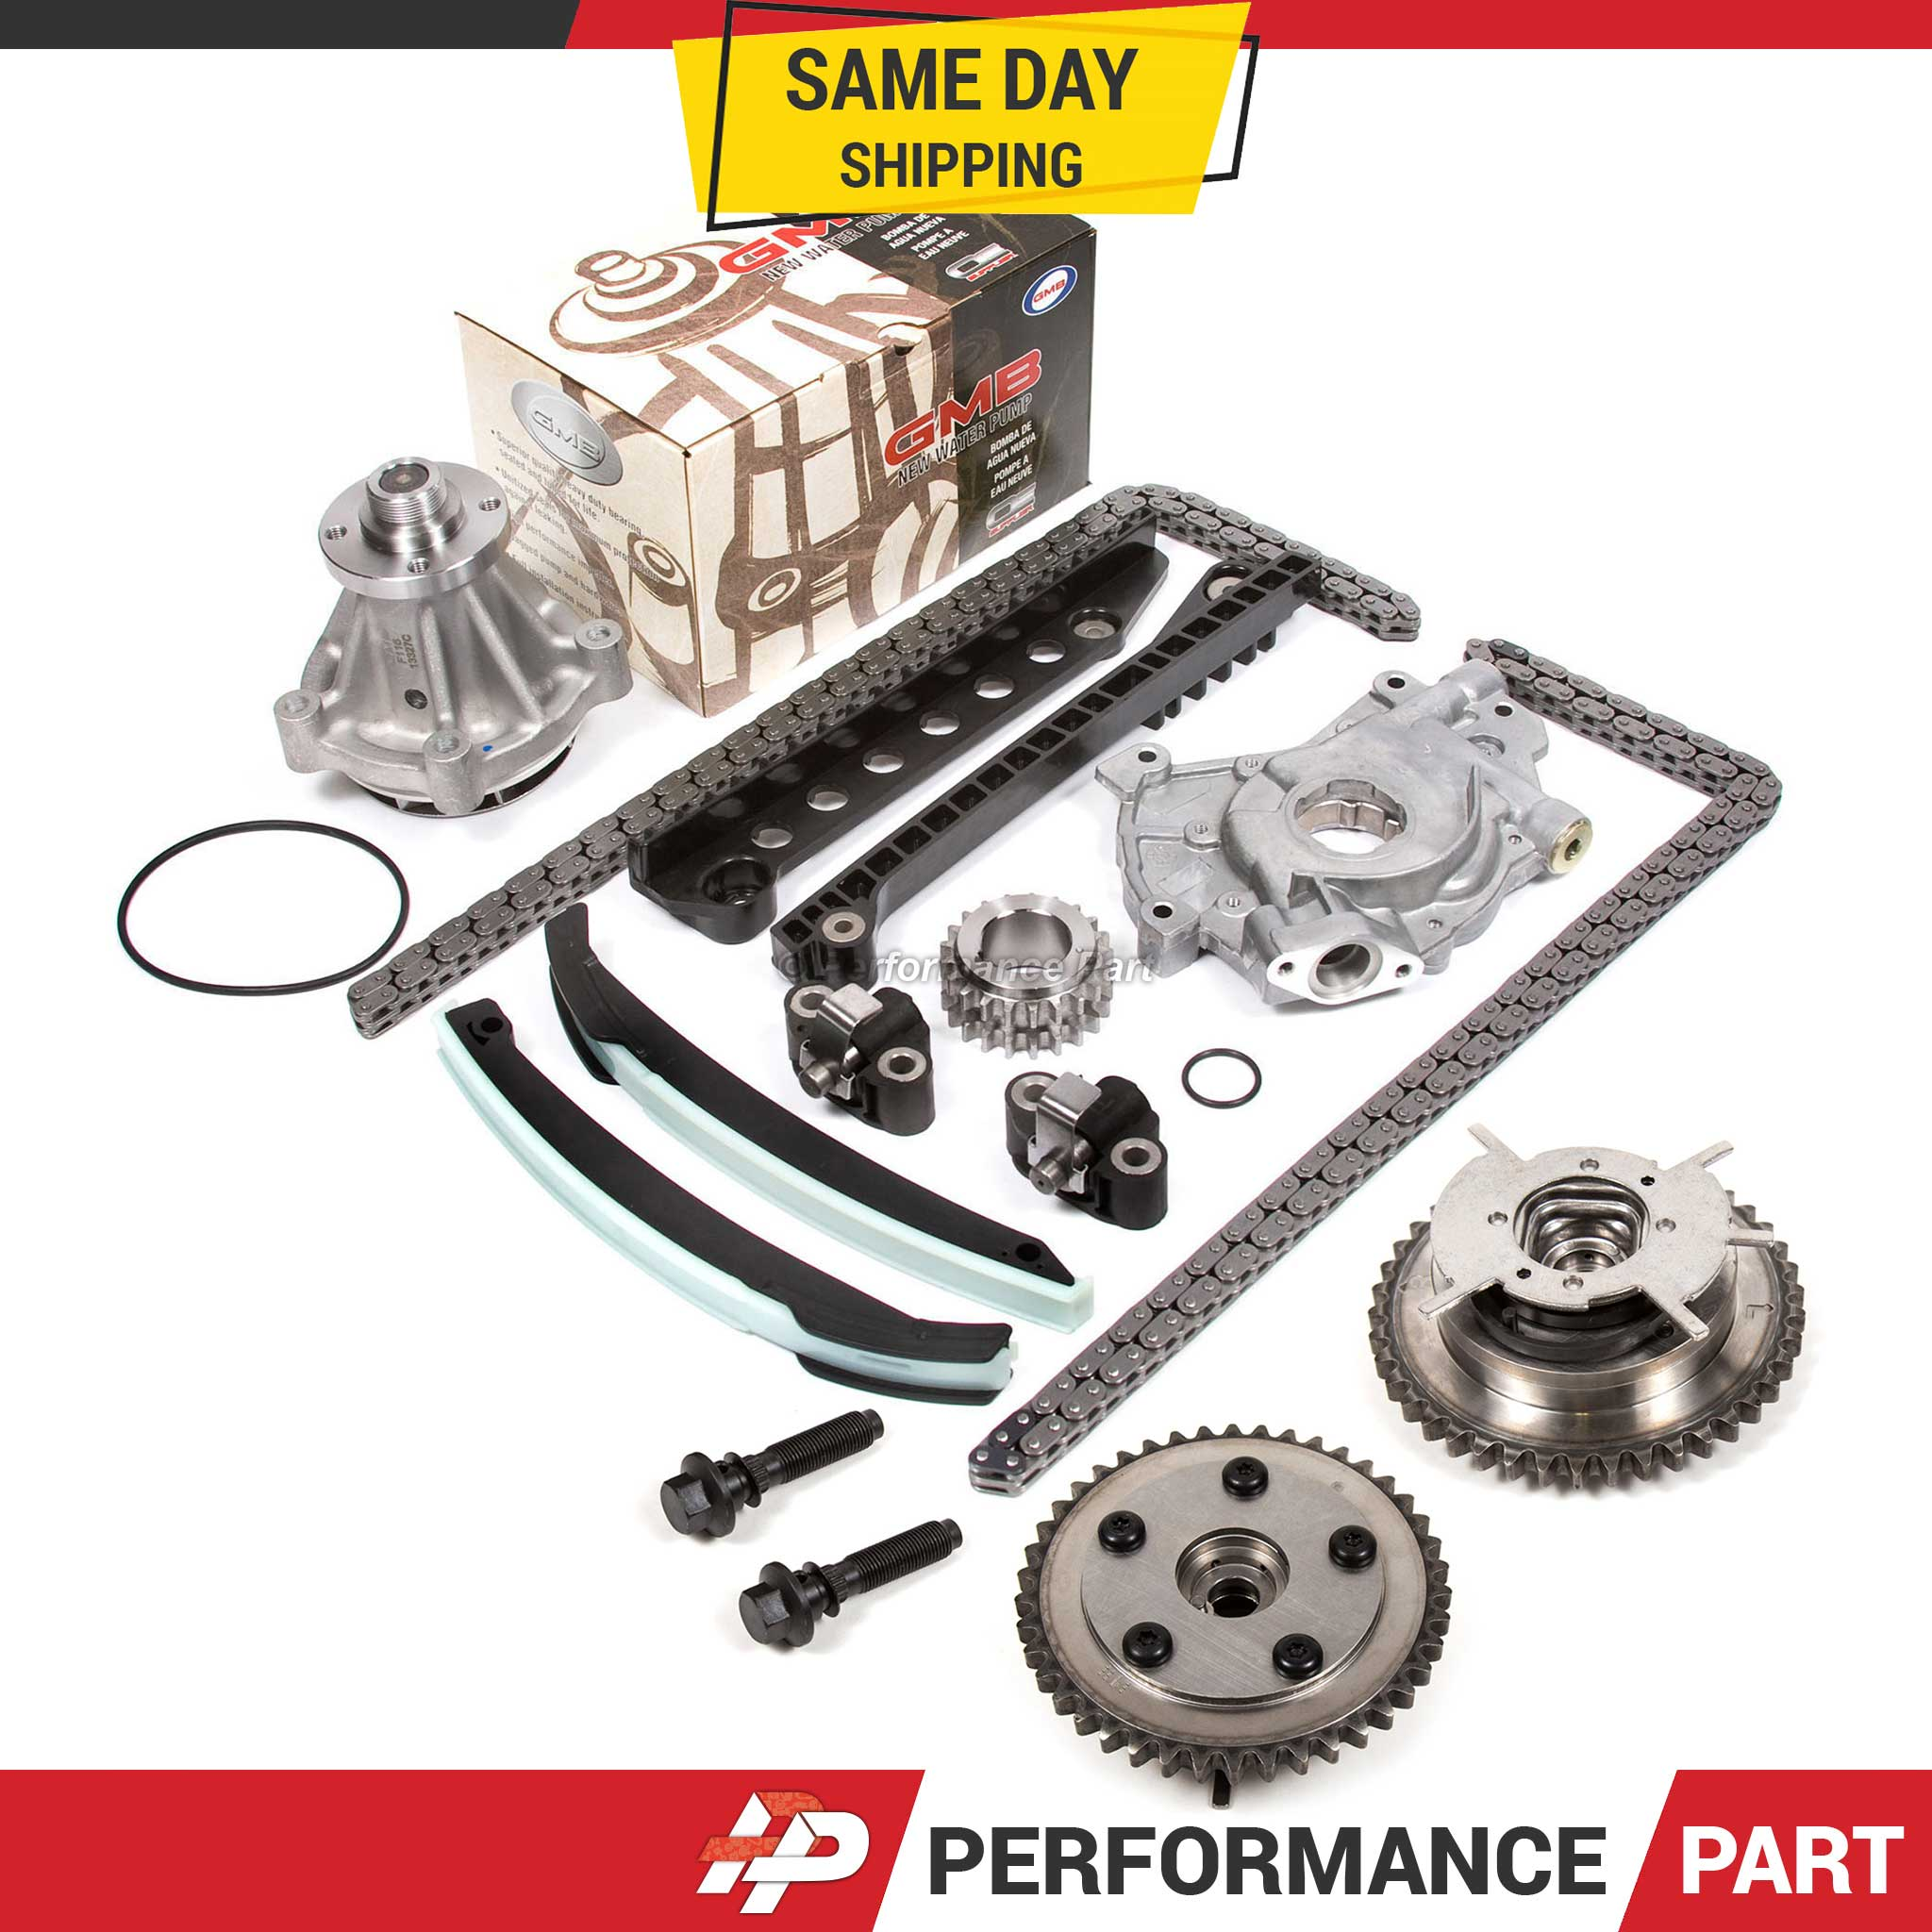 04-08 Ford Lincoln 5.4 TRITON 3-Valve Timing Chain Kit Cam